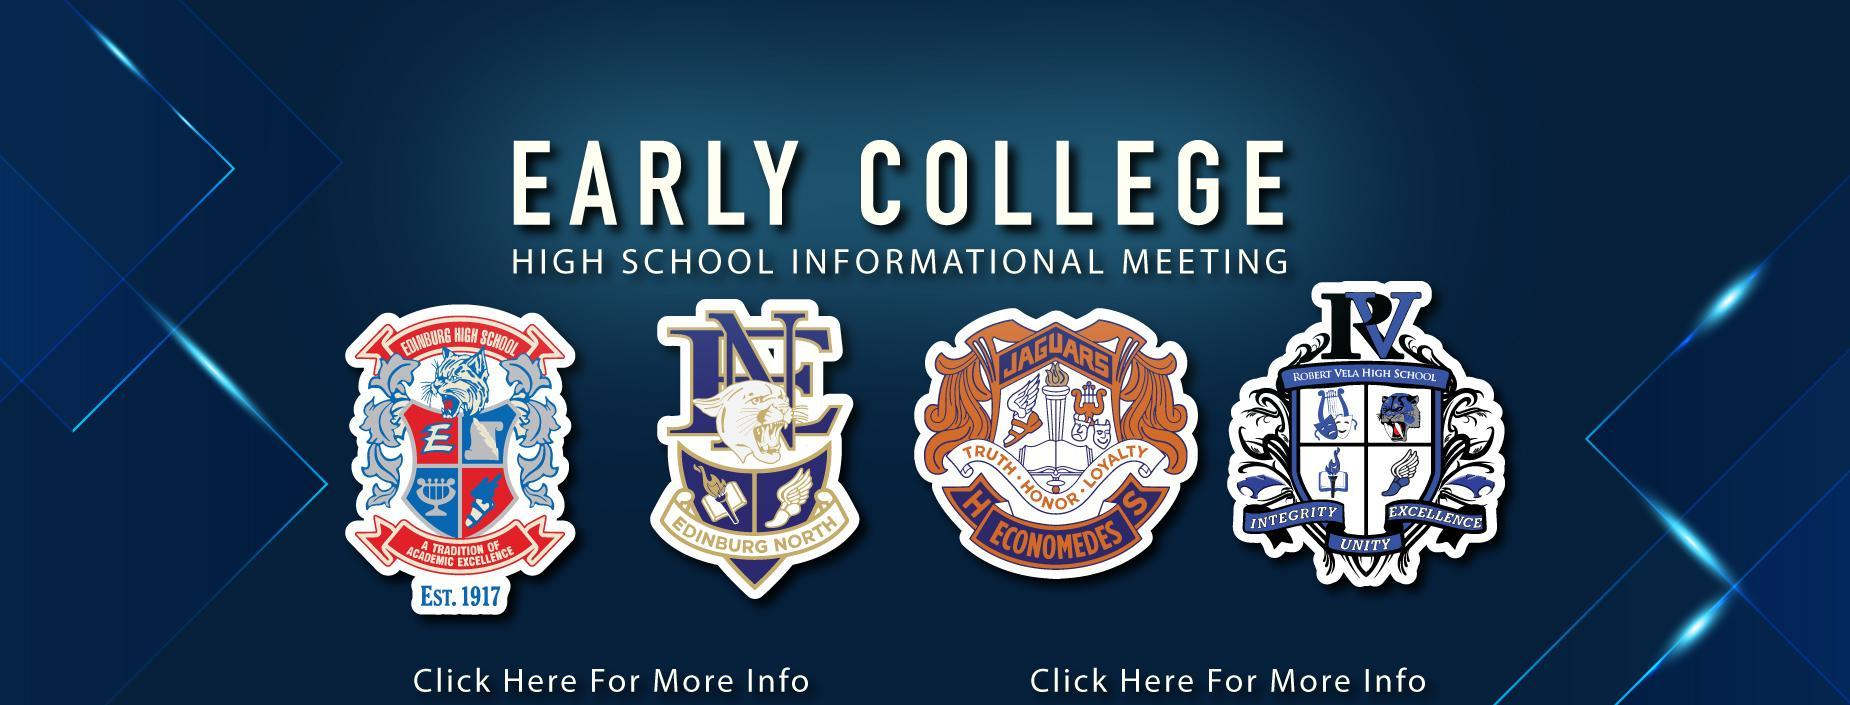 early college high school informational meeting.  click for more info.